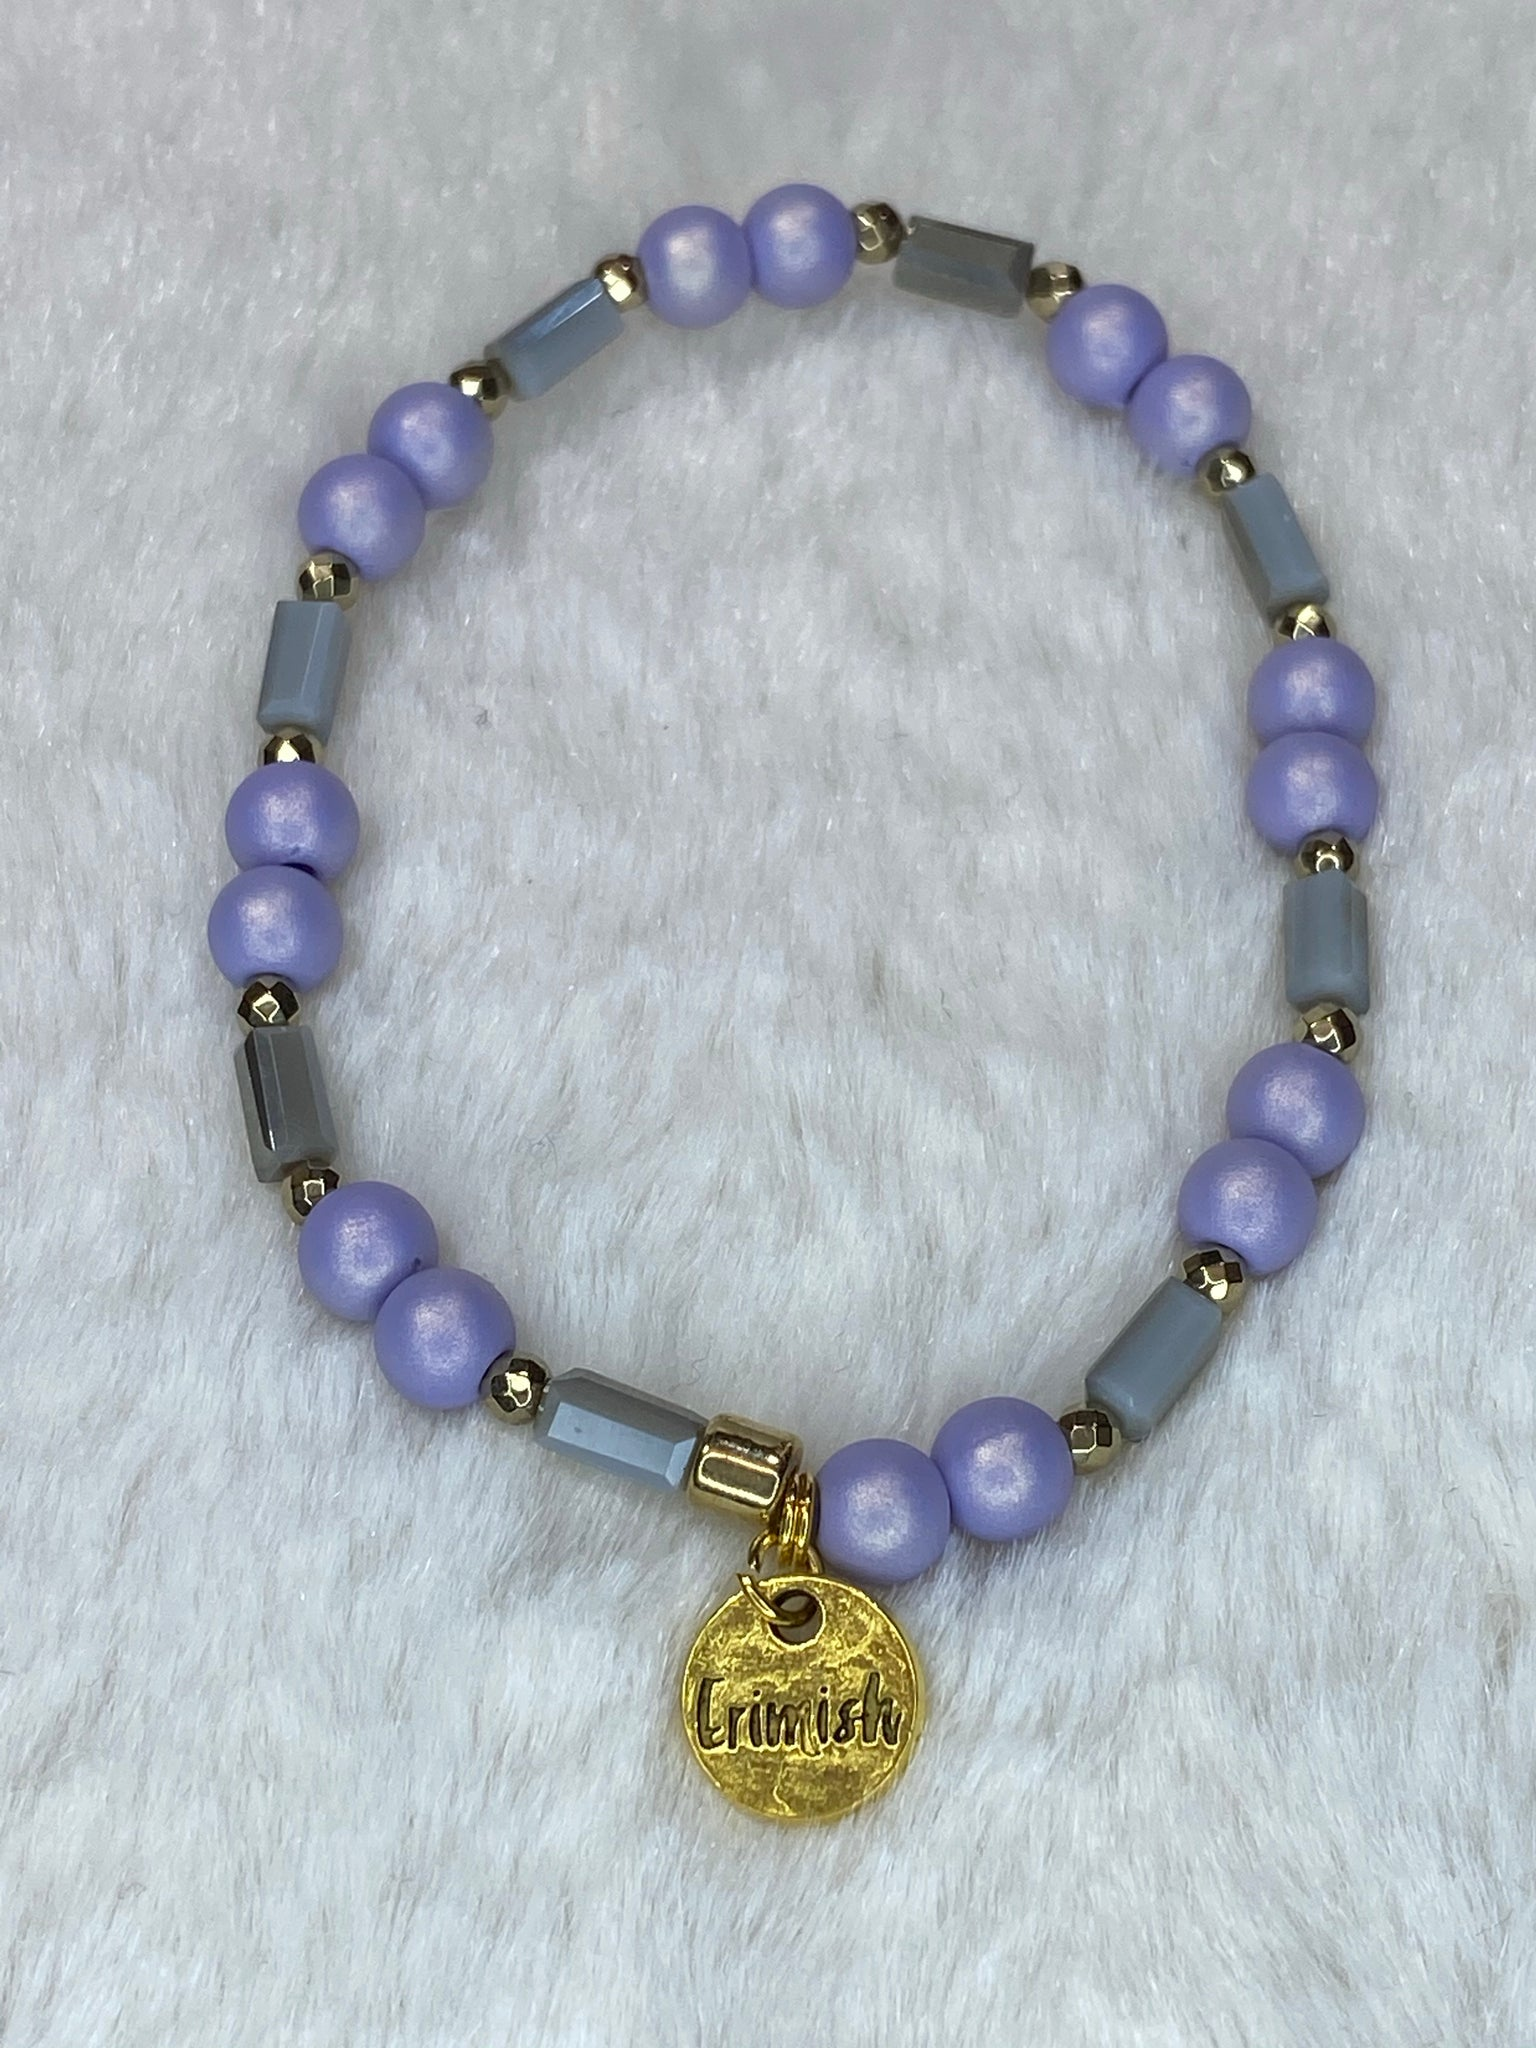 Erimish Beaded Bracelet - Aloha Collection - True Bliss Boutique